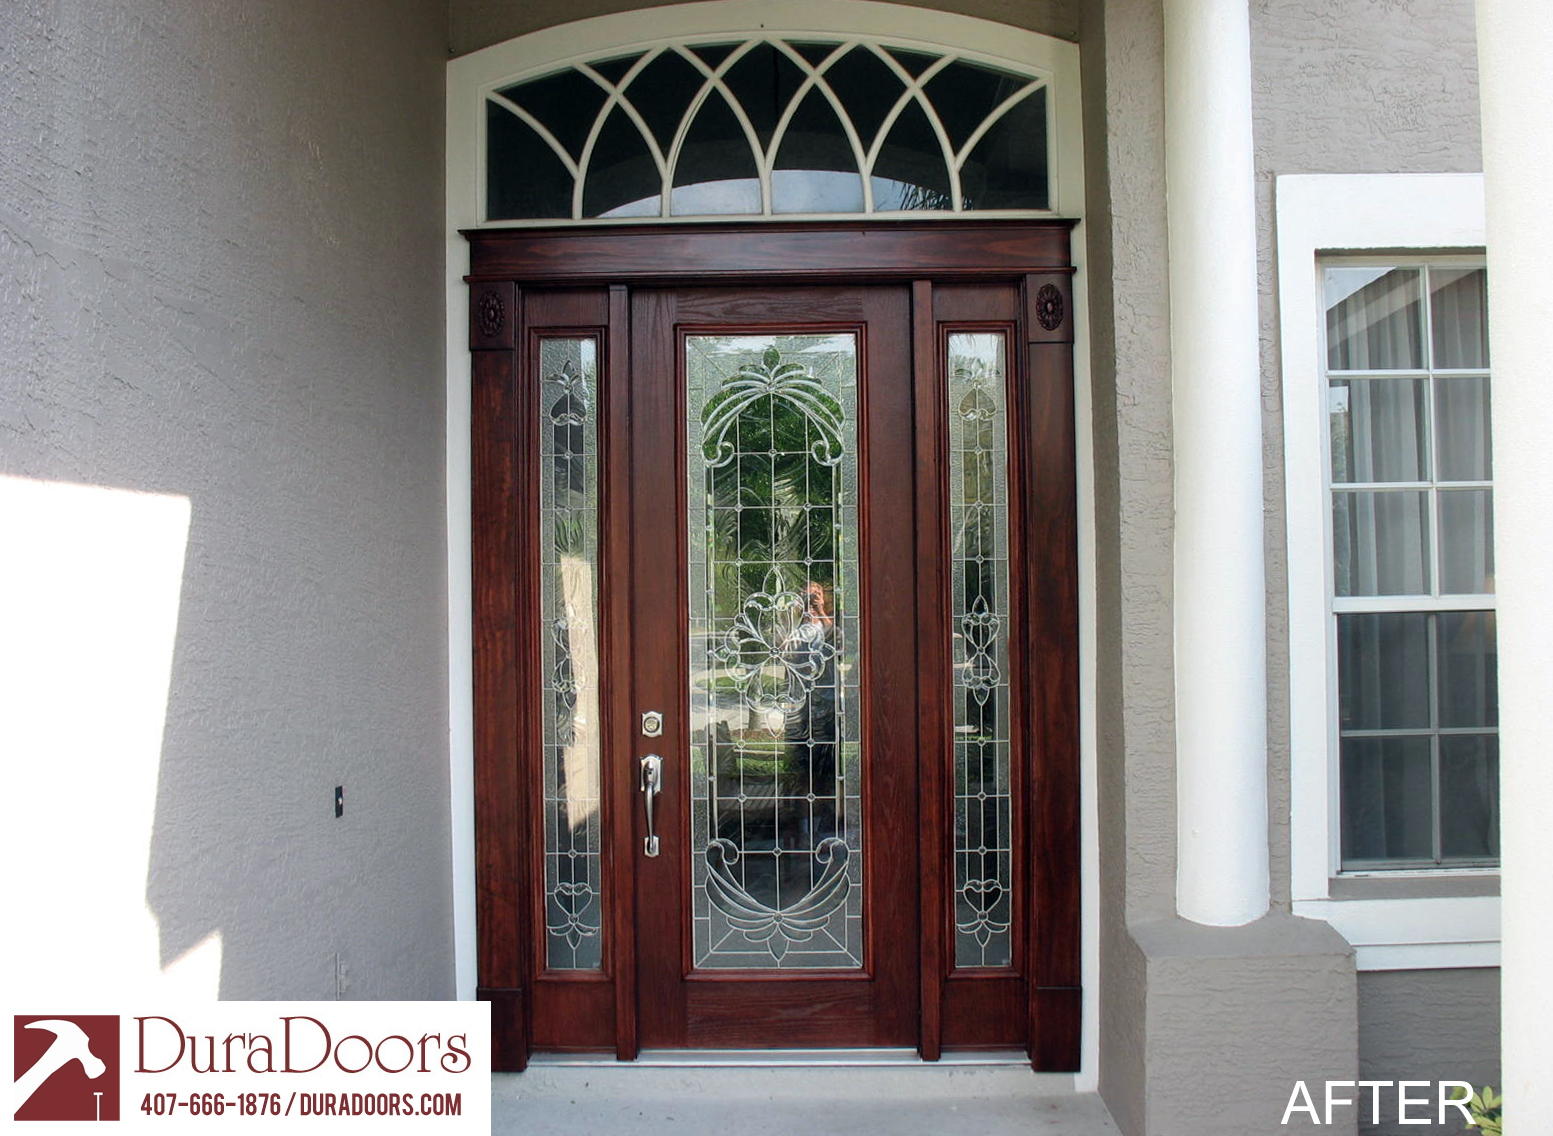 Single Door With Odl Expressions Glass Duradoors